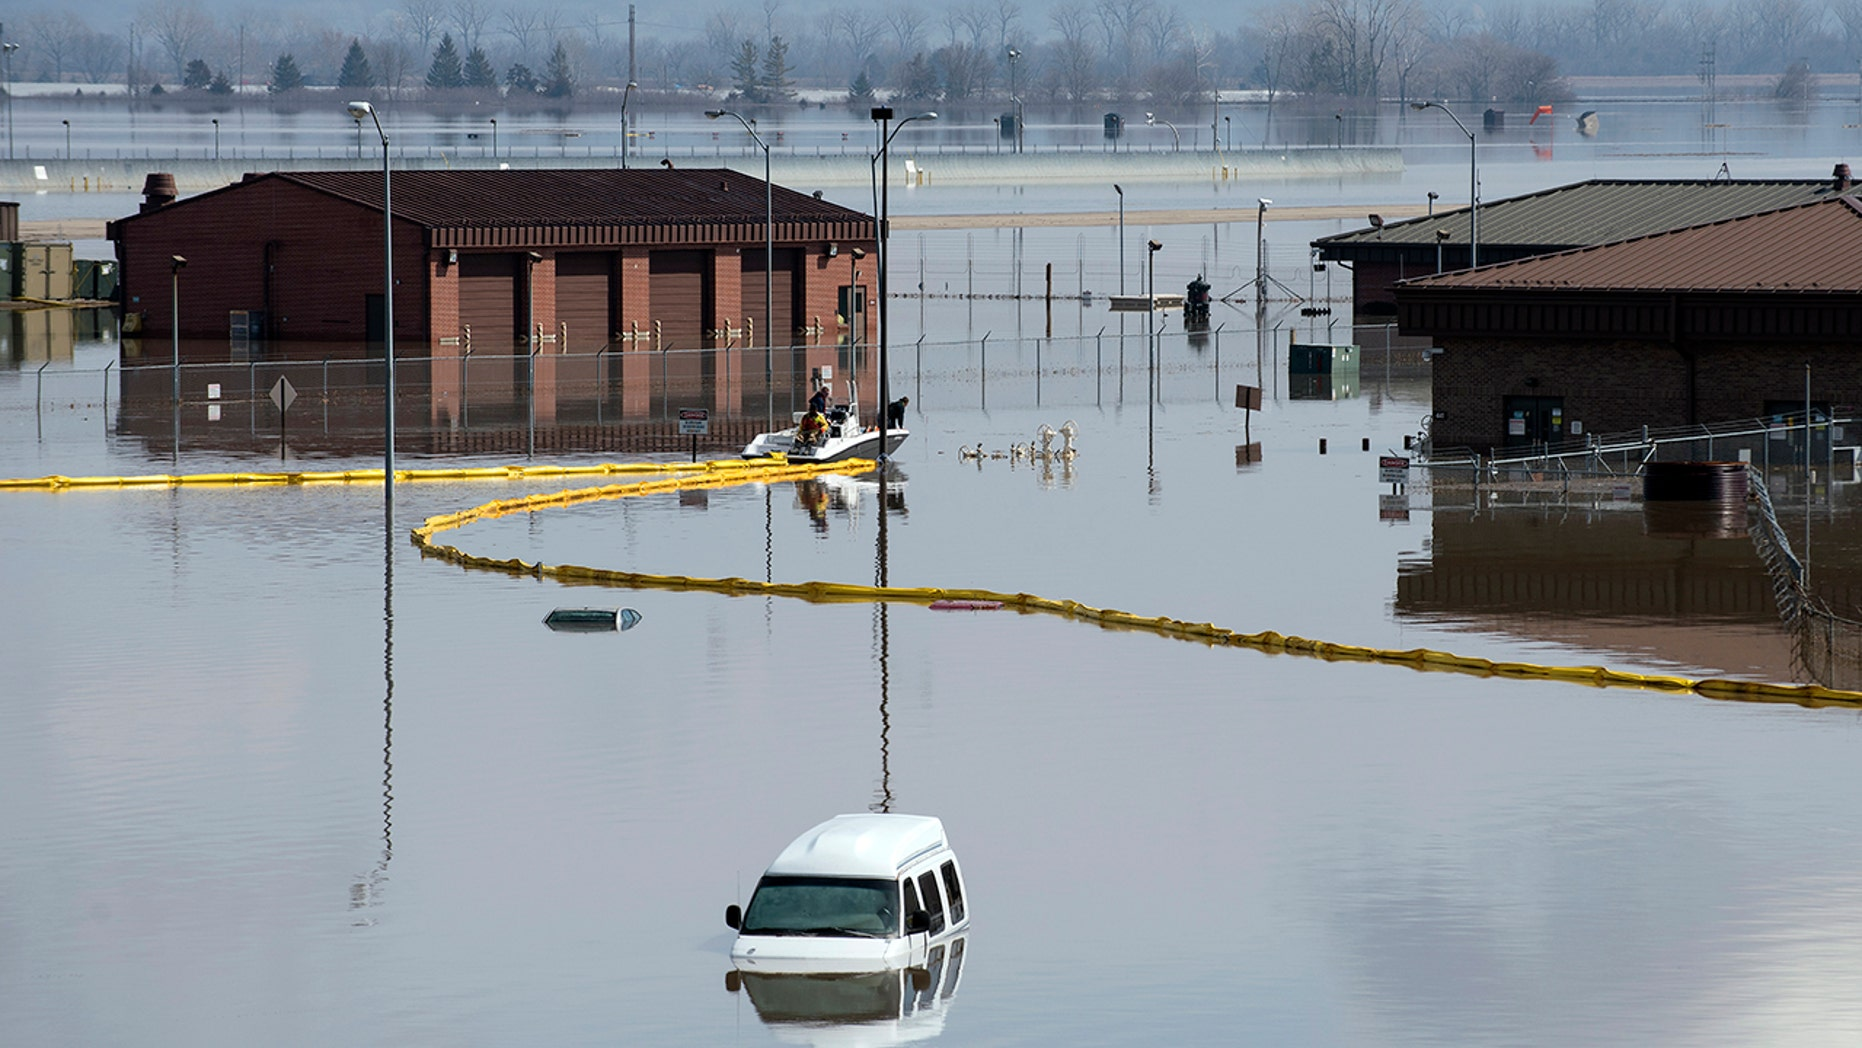 Environmental restoration staff deploy a containment boom from a boat at Offutt Air Force Base in Neb., As a precautionary measure for possible leakage of fuel in the flooded area.